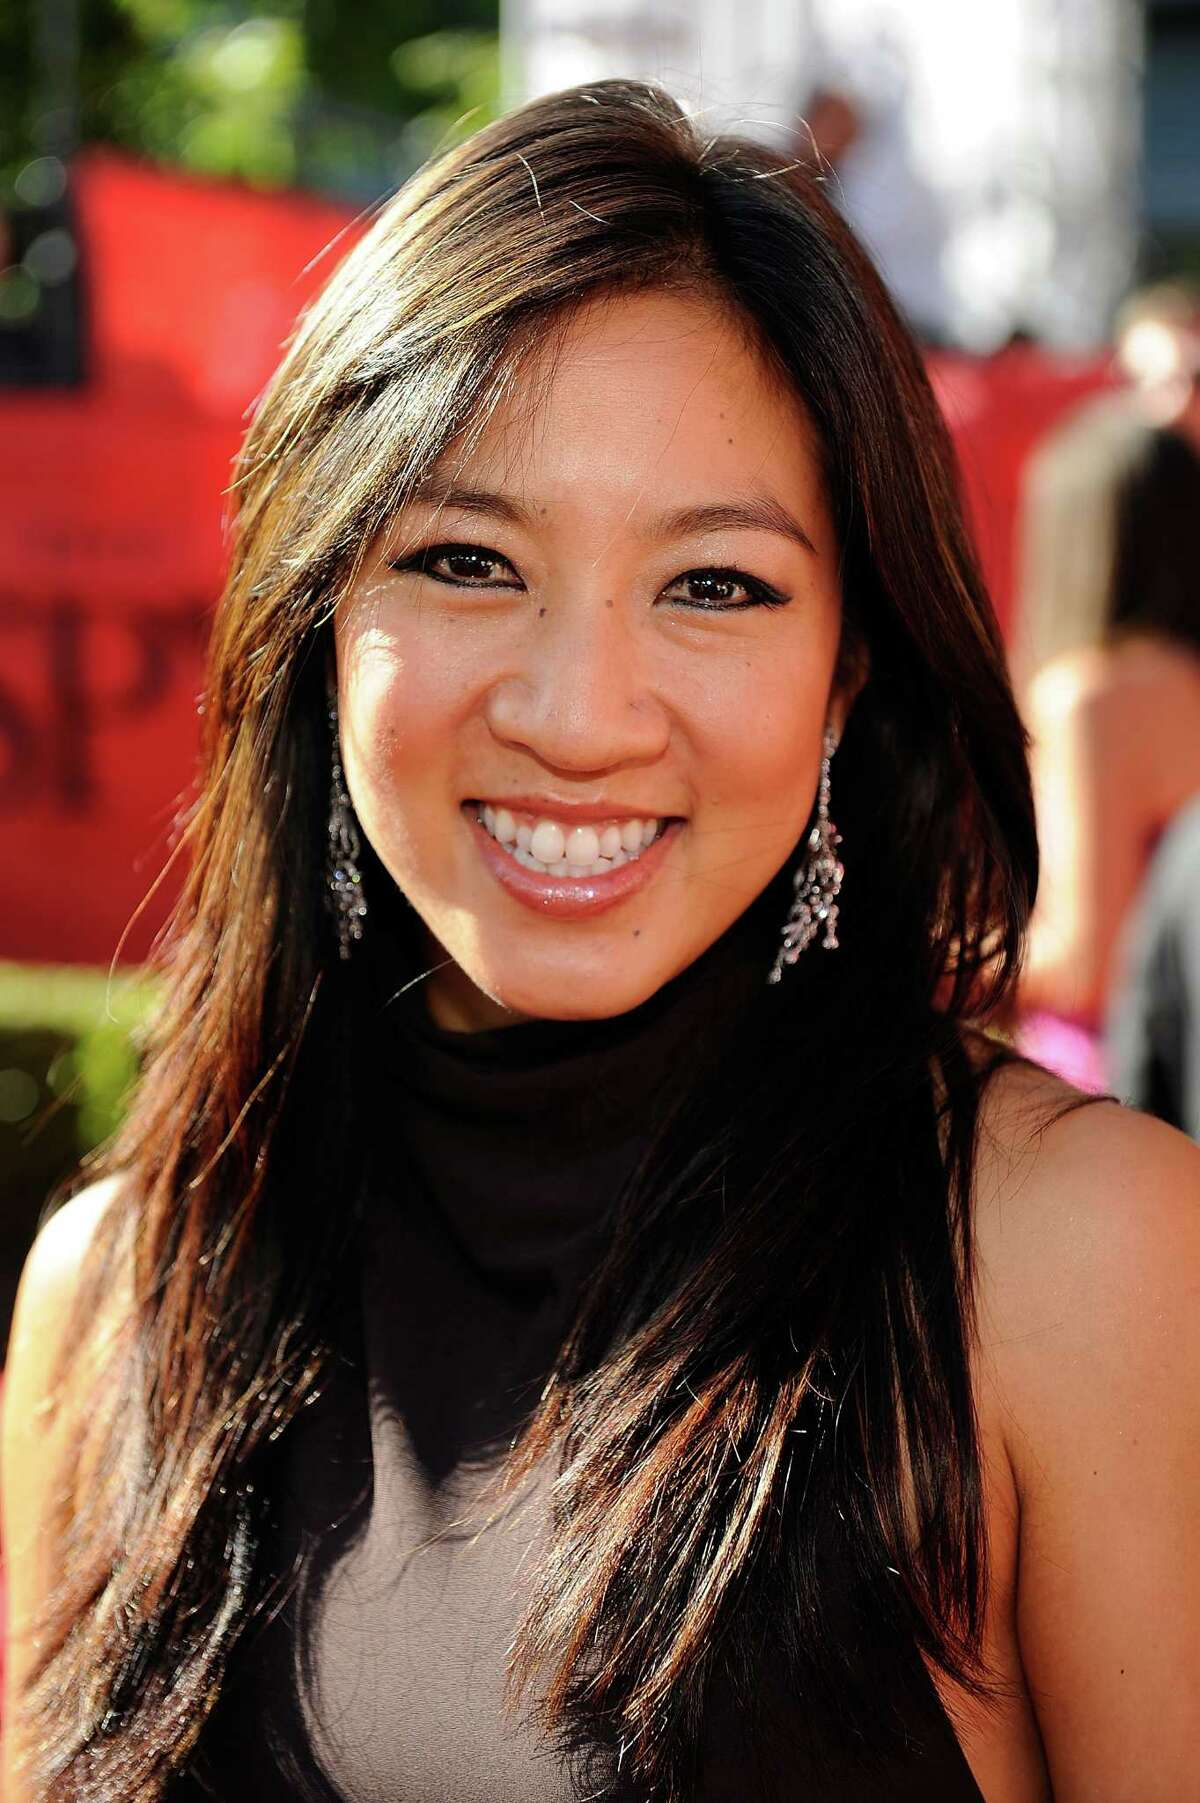 LOS ANGELES, CA - JULY 15: Olympic Ice skater Michelle Kwan arrives at the 2009 ESPY Awards held at Nokia Theatre LA Live on July 15, 2009 in Los Angeles, California. The 17th annual ESPYs will air on Sunday, July 19 at 9PM ET on ESPN. (Photo by Kevork Djansezian/Getty Images for ESPY)